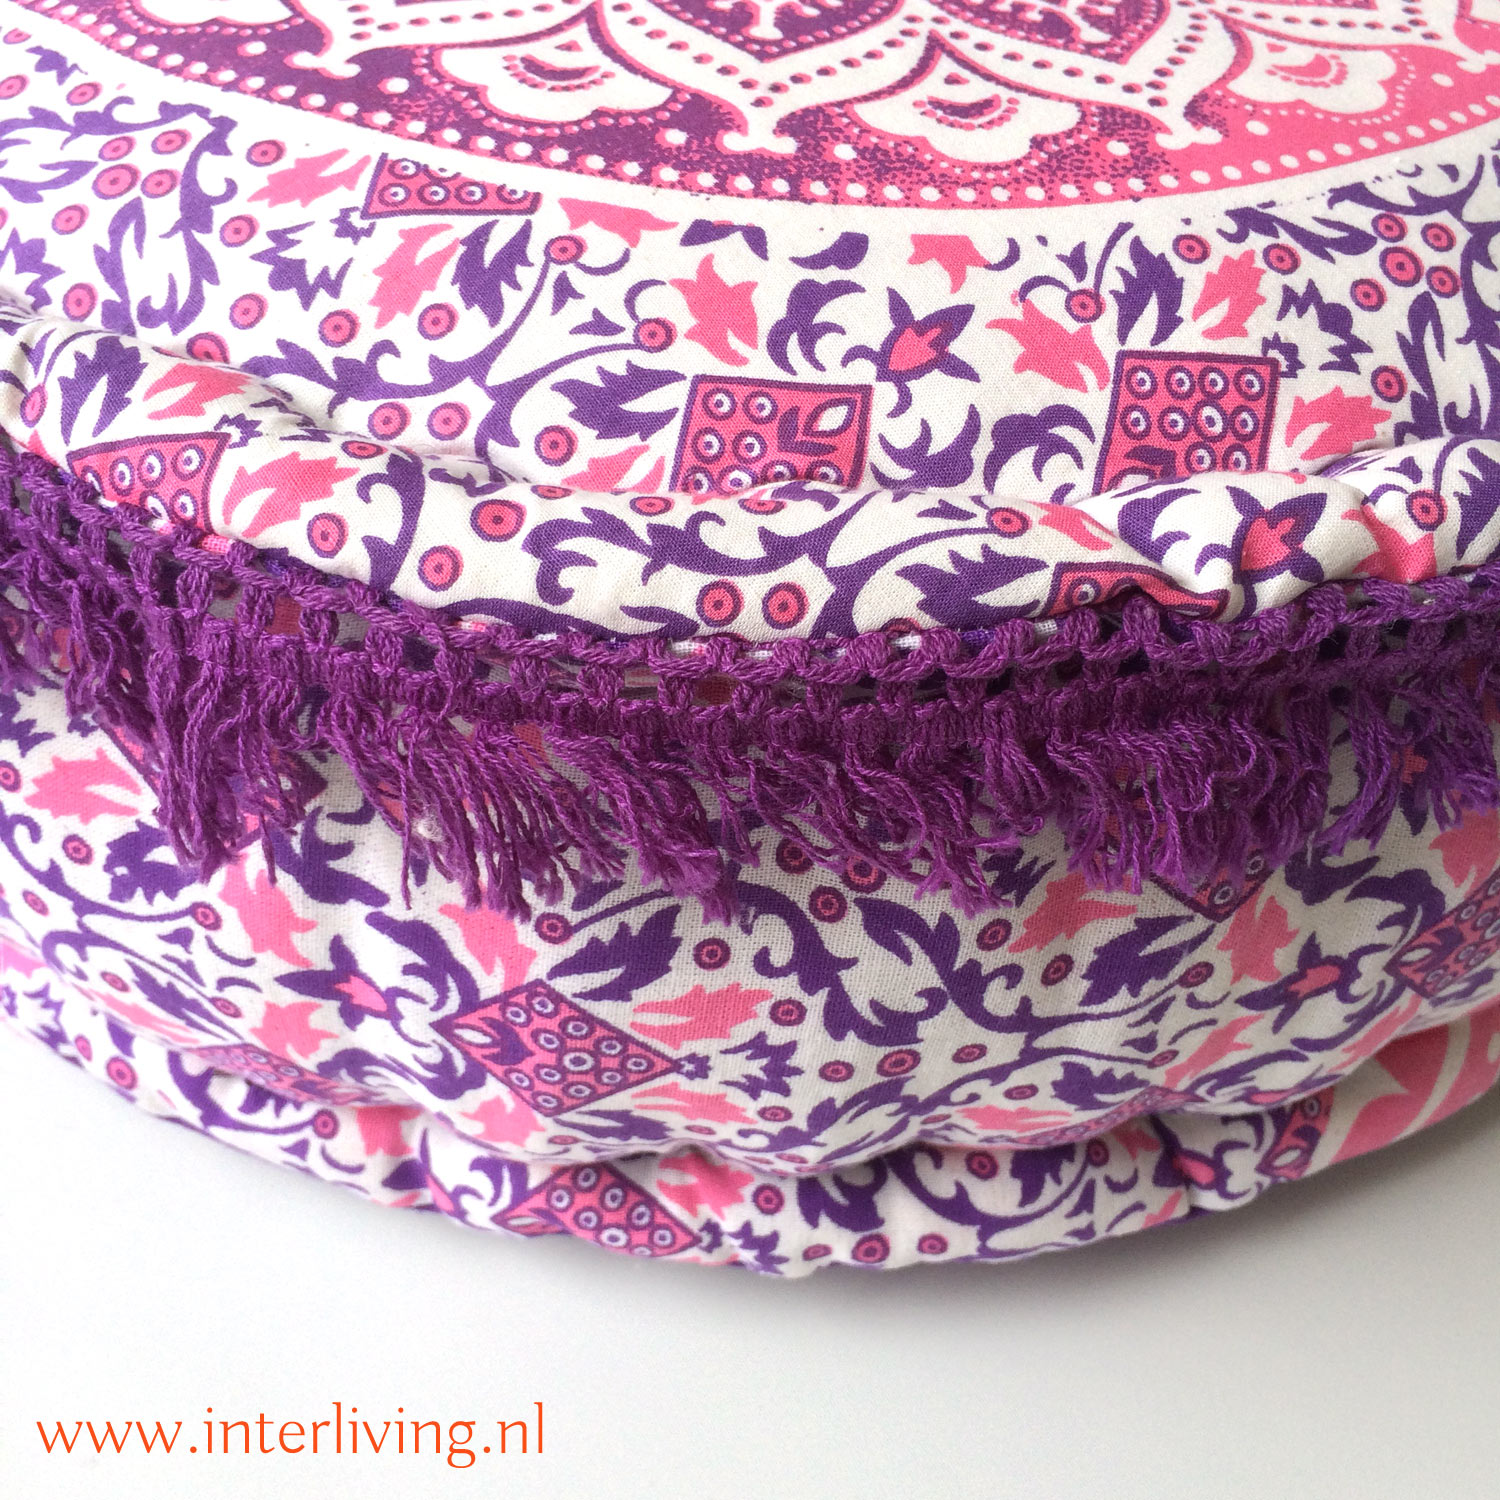 oosterse-boho-poef-rond-mandala-paars-roze-wit-rond-franje-rand